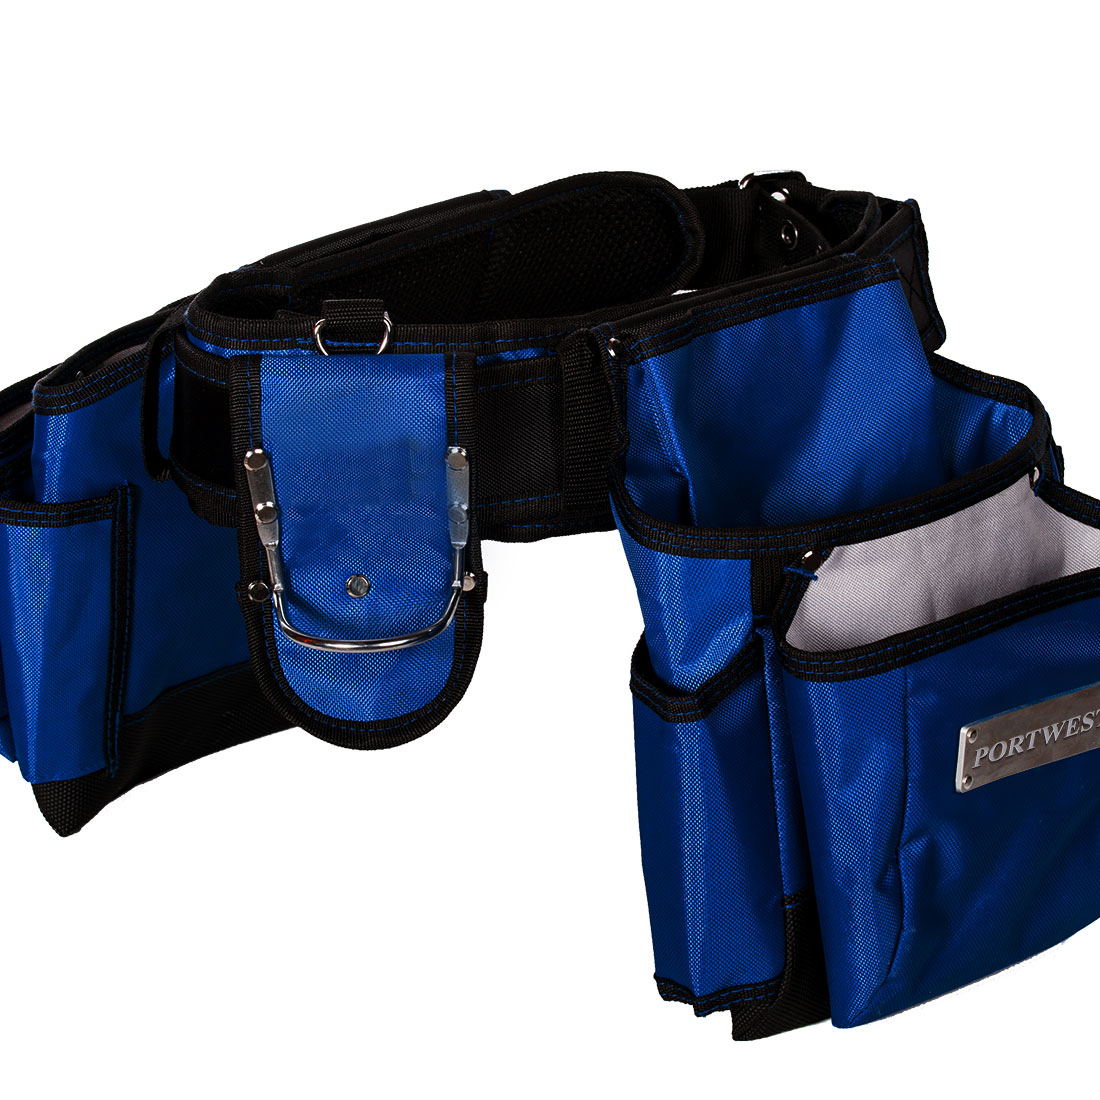 Portwest Tradesman Tool Belt - TB10